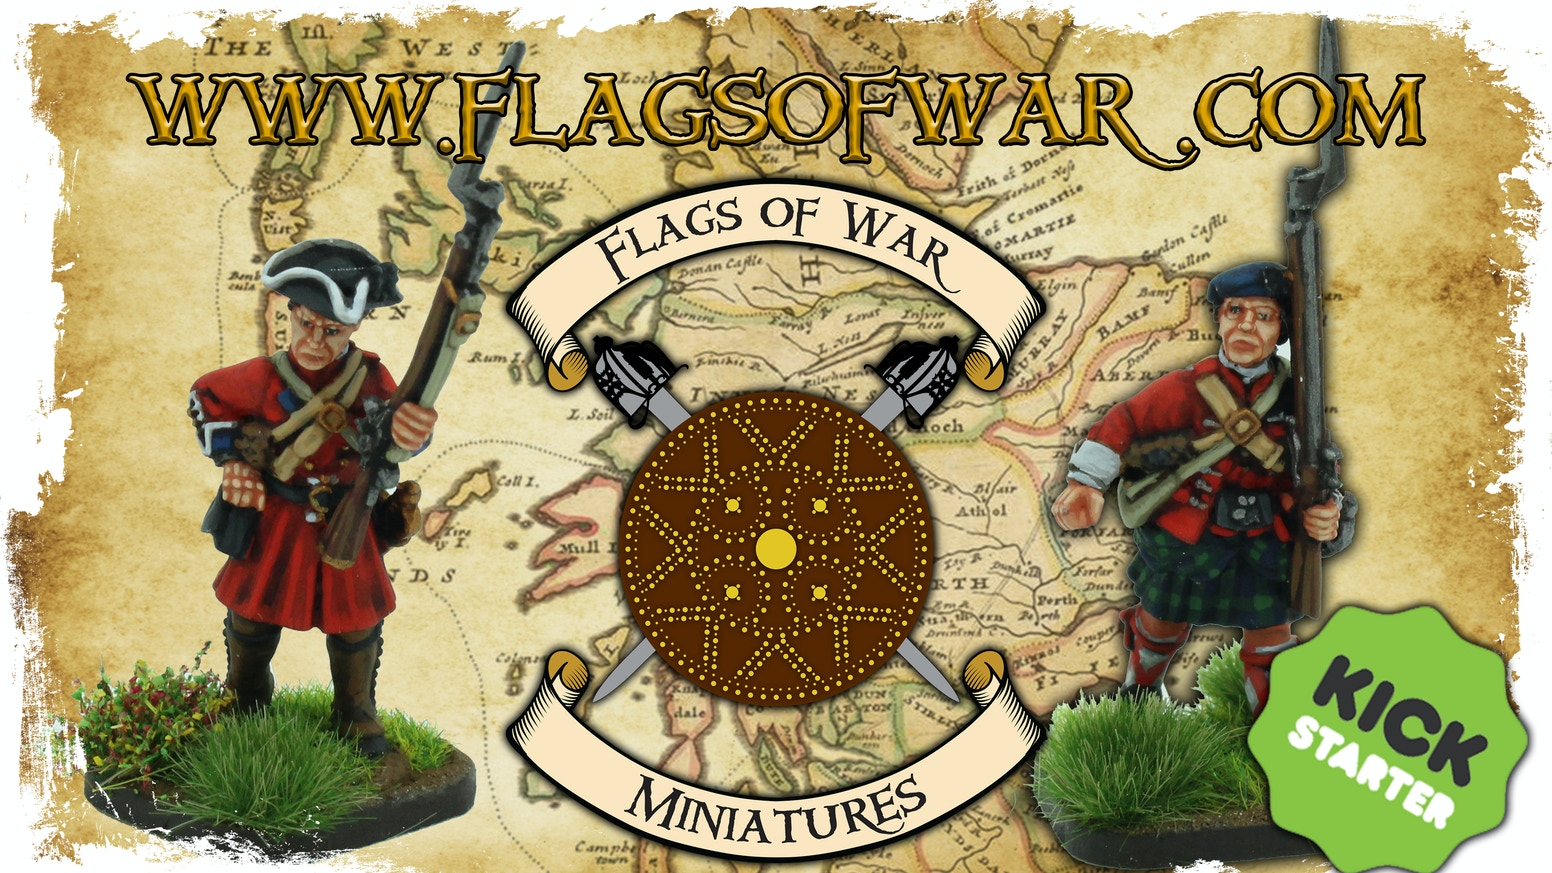 New 28mm miniatures for the British Government Troops during the 1745 Jacobite Rebellion.